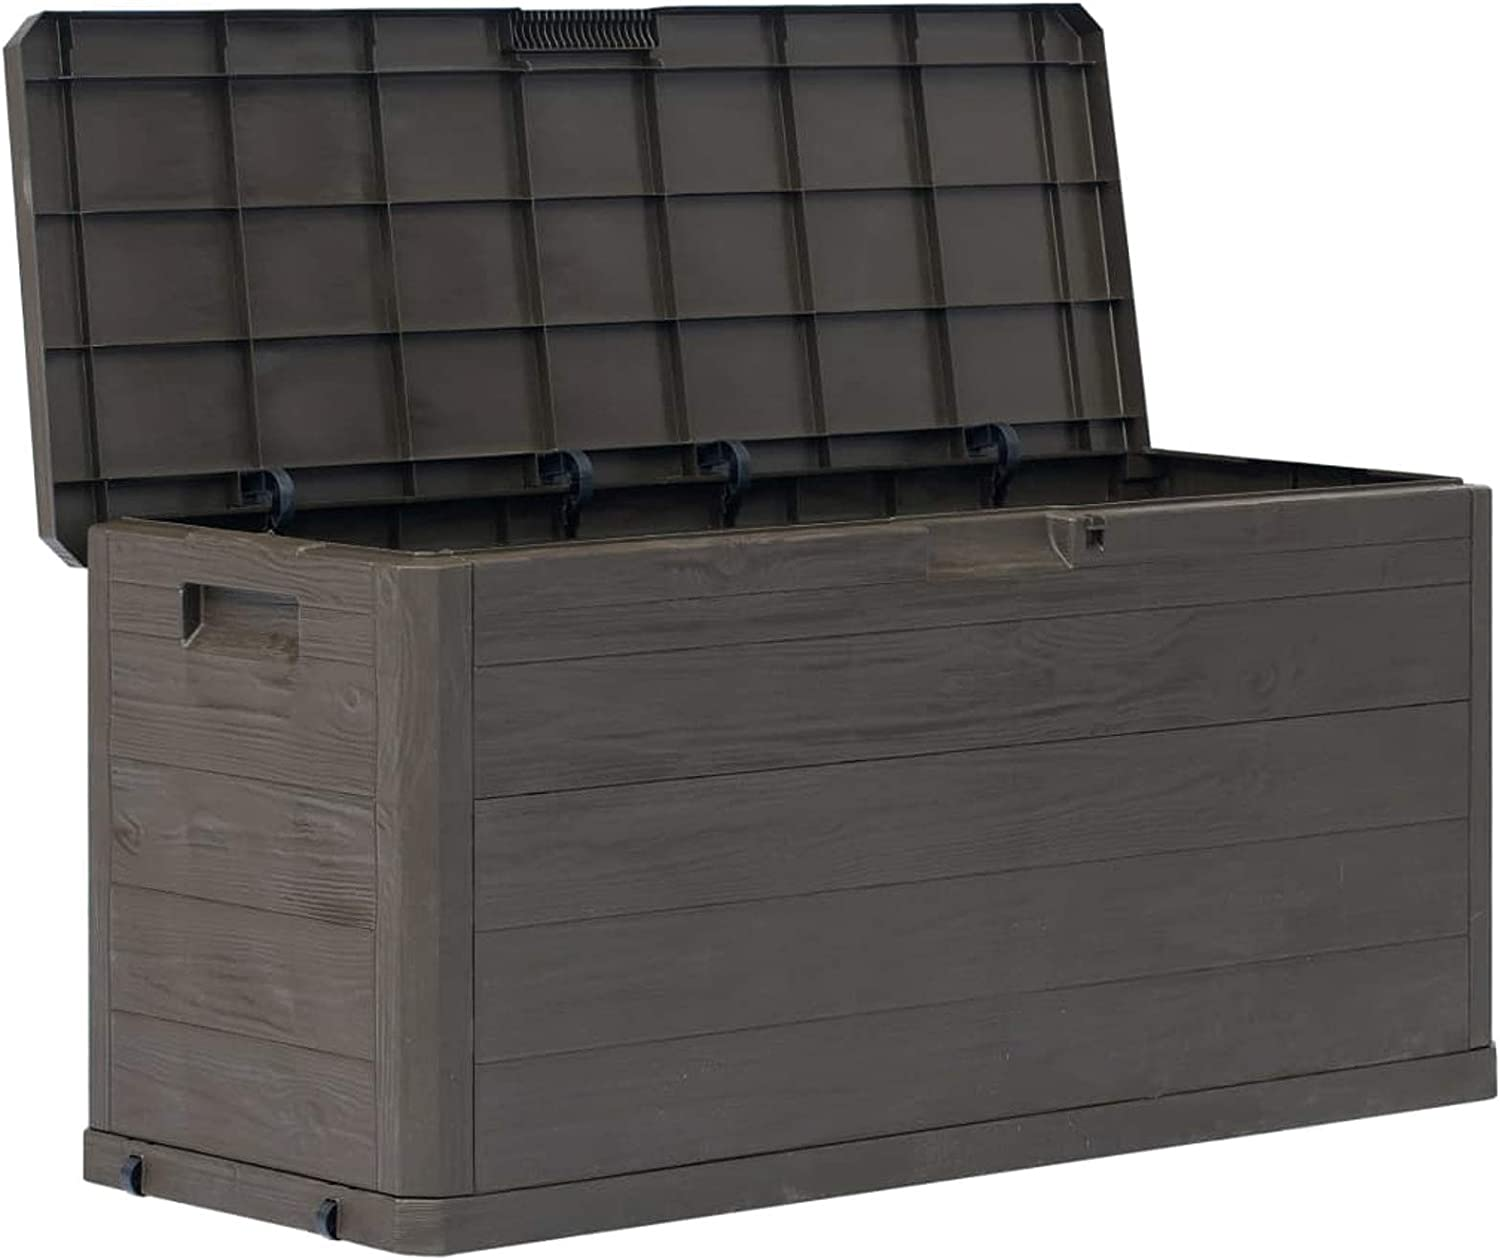 Tidyard Garden Storage Deck Box Plastic 74 Gal Lockable Garden Container Cabinet Toolbox for Patio Lawn Backyard Outdoor Furniture 46.1 x 17.7 x 22 Inches W x D x H Poolside